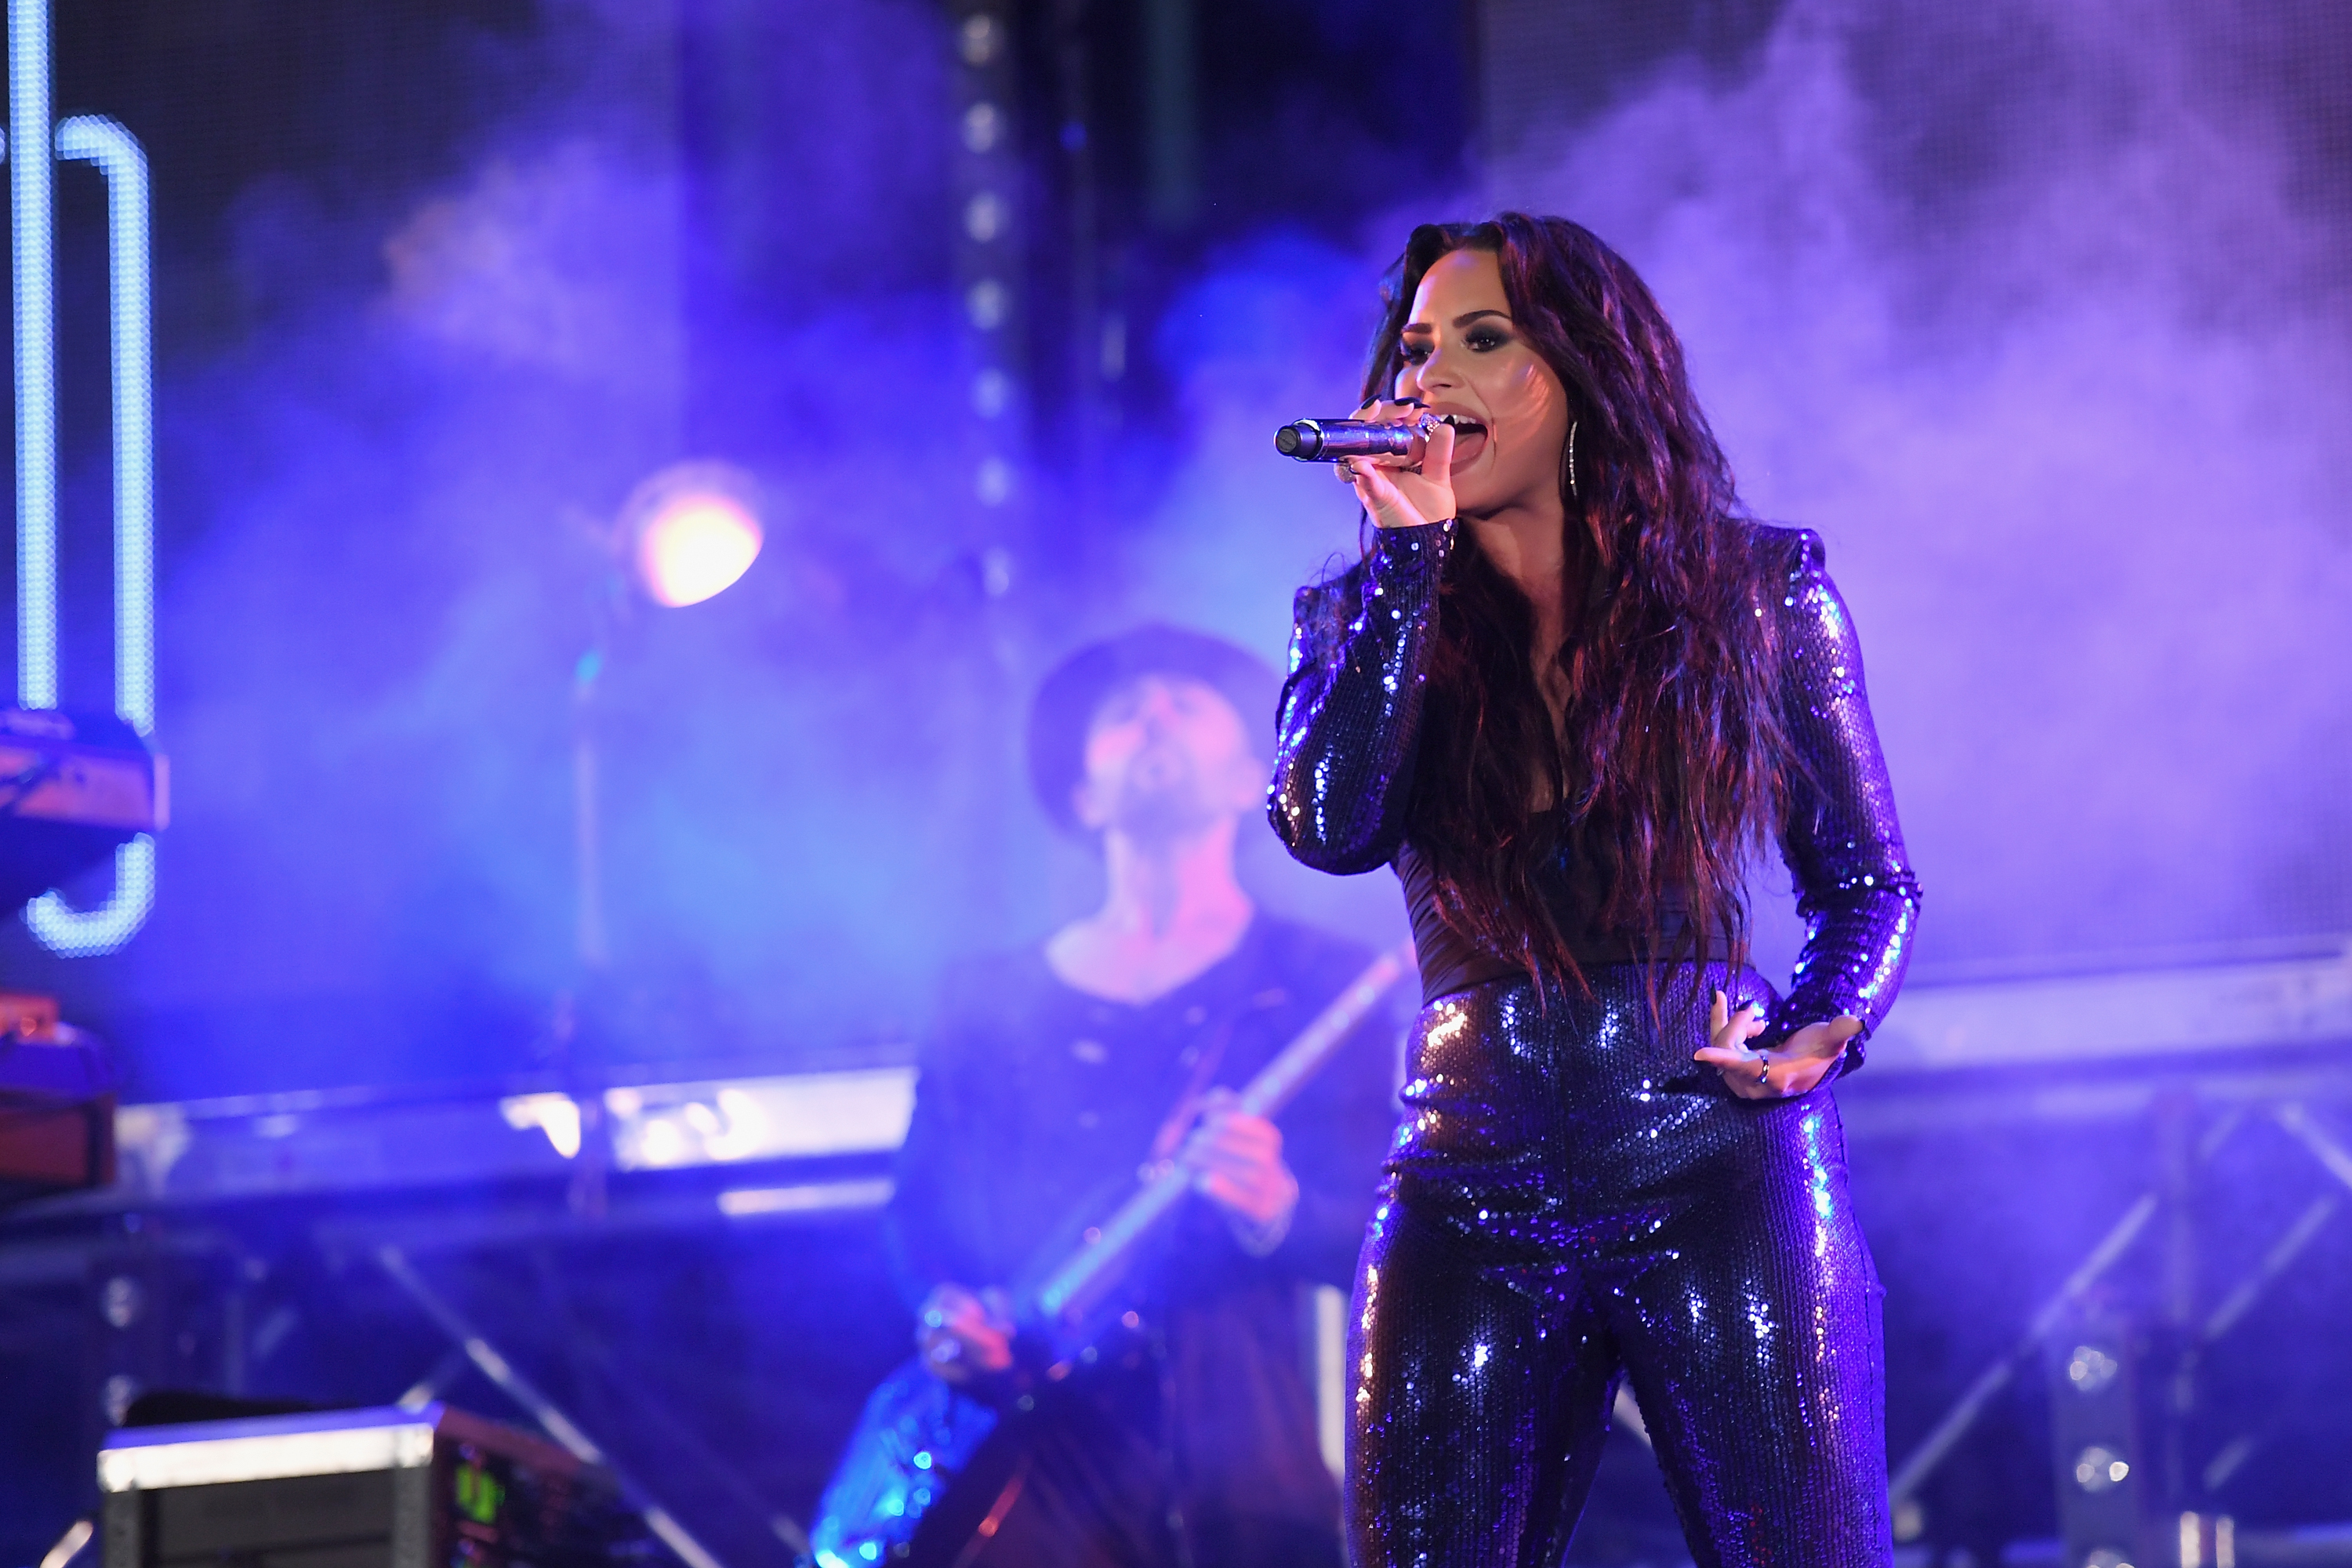 Demi Lovato performs onstage at Fontainebleau Miami Beach in Miami on Dec. 31, 2017.